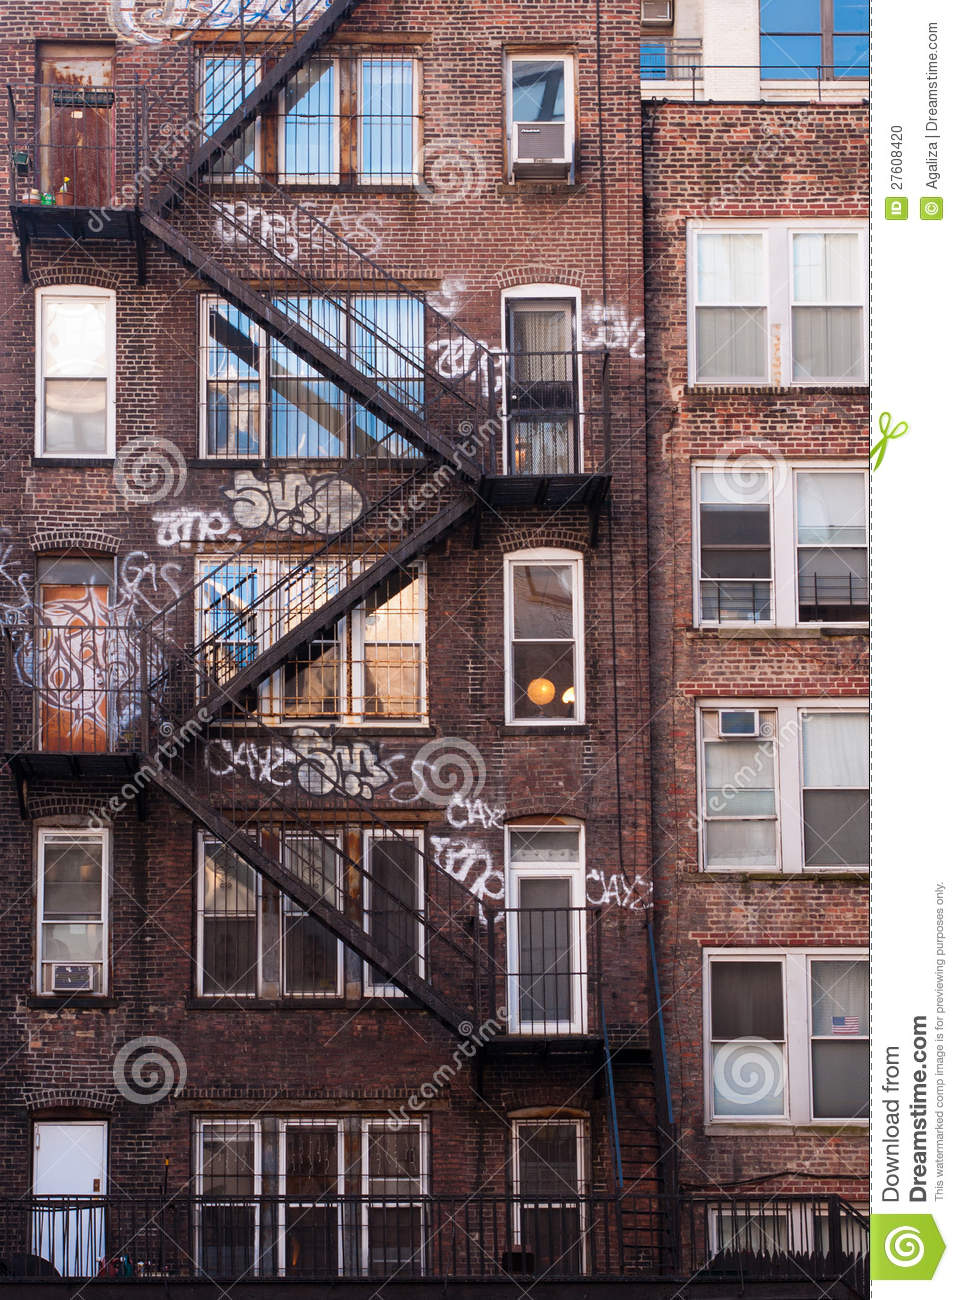 Captivating New York City Brick Apartment Building